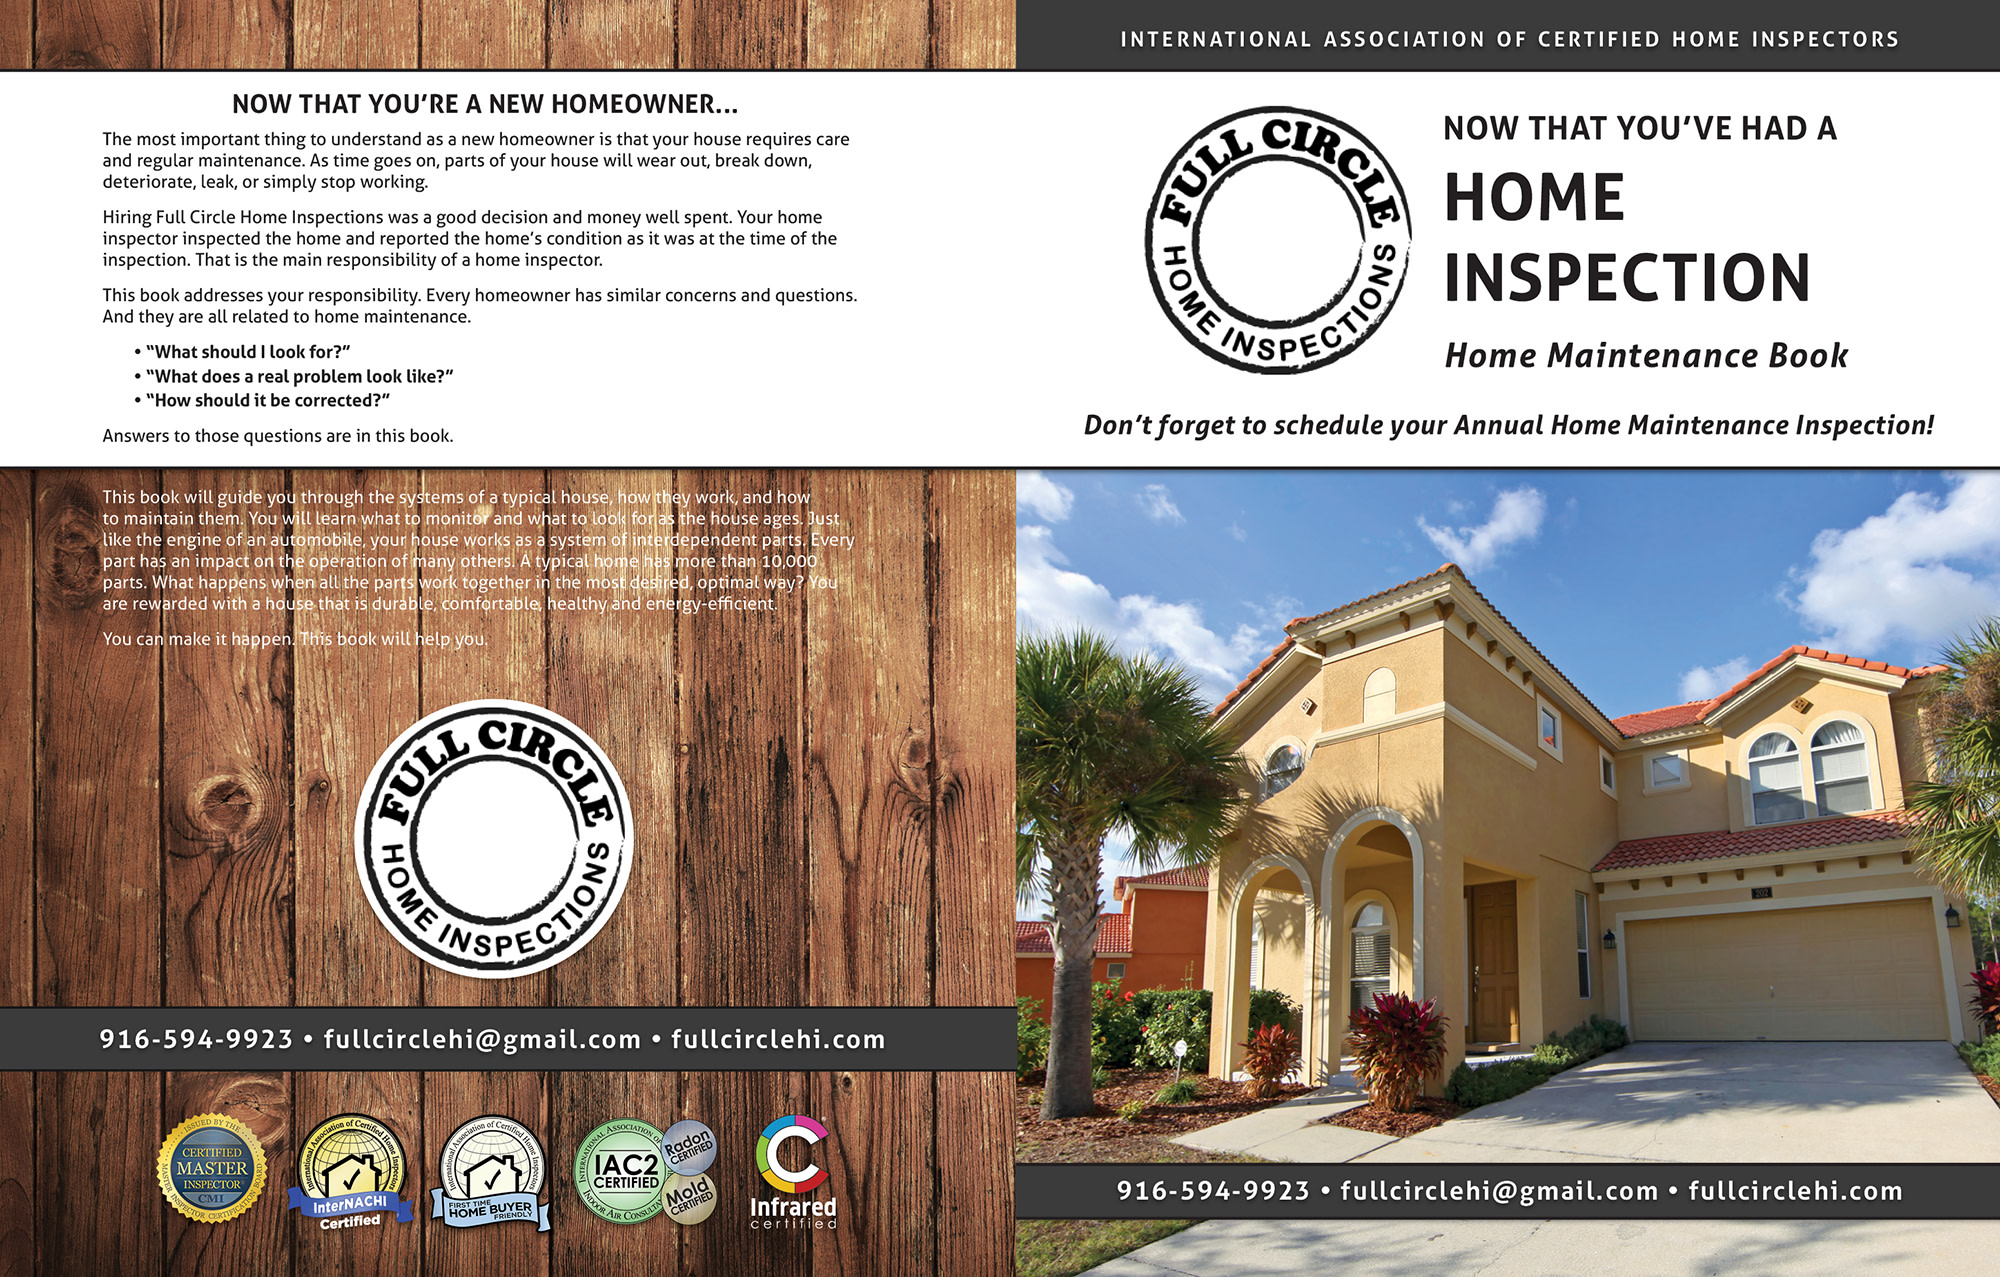 Custom Home Maintenance Book for Full Circle Home Inspections.